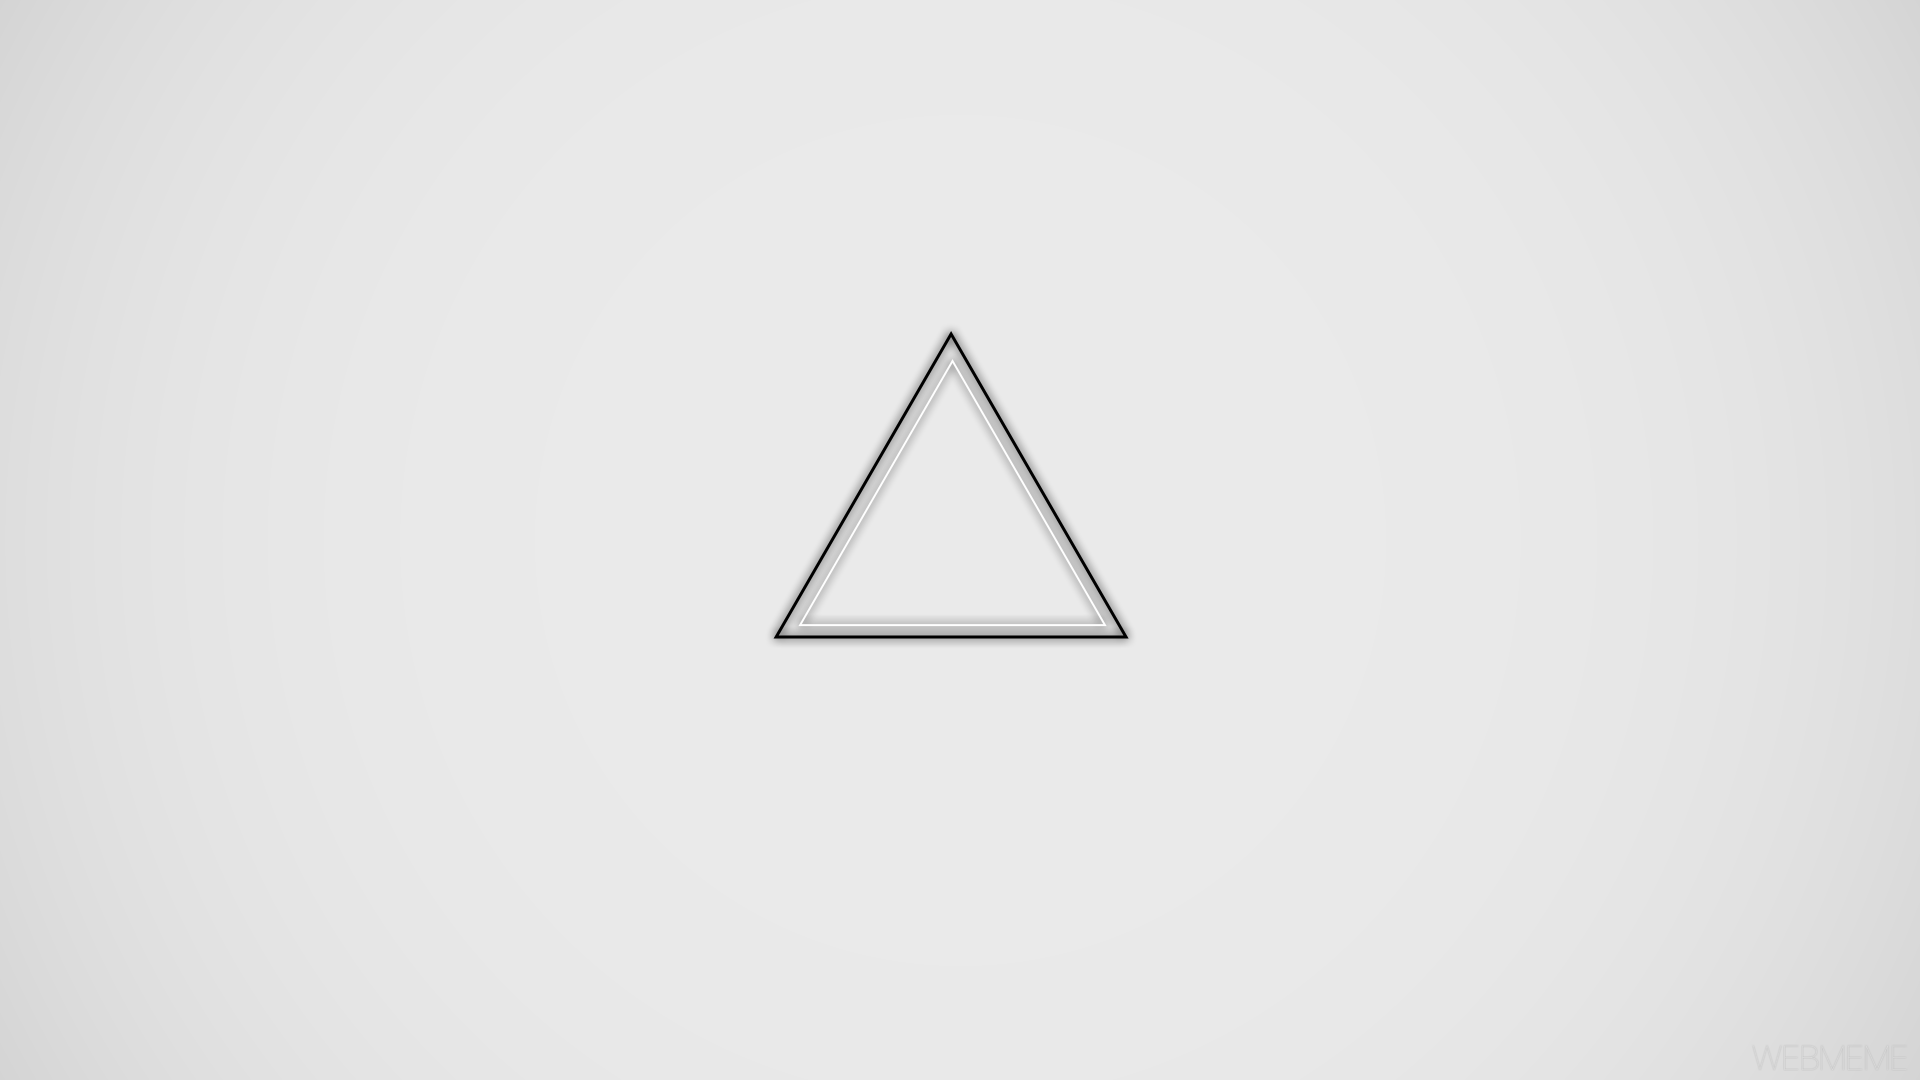 General-1920x1080-minimalism-geometry-triangle-black-white-gray-wallpaper-wp3805845